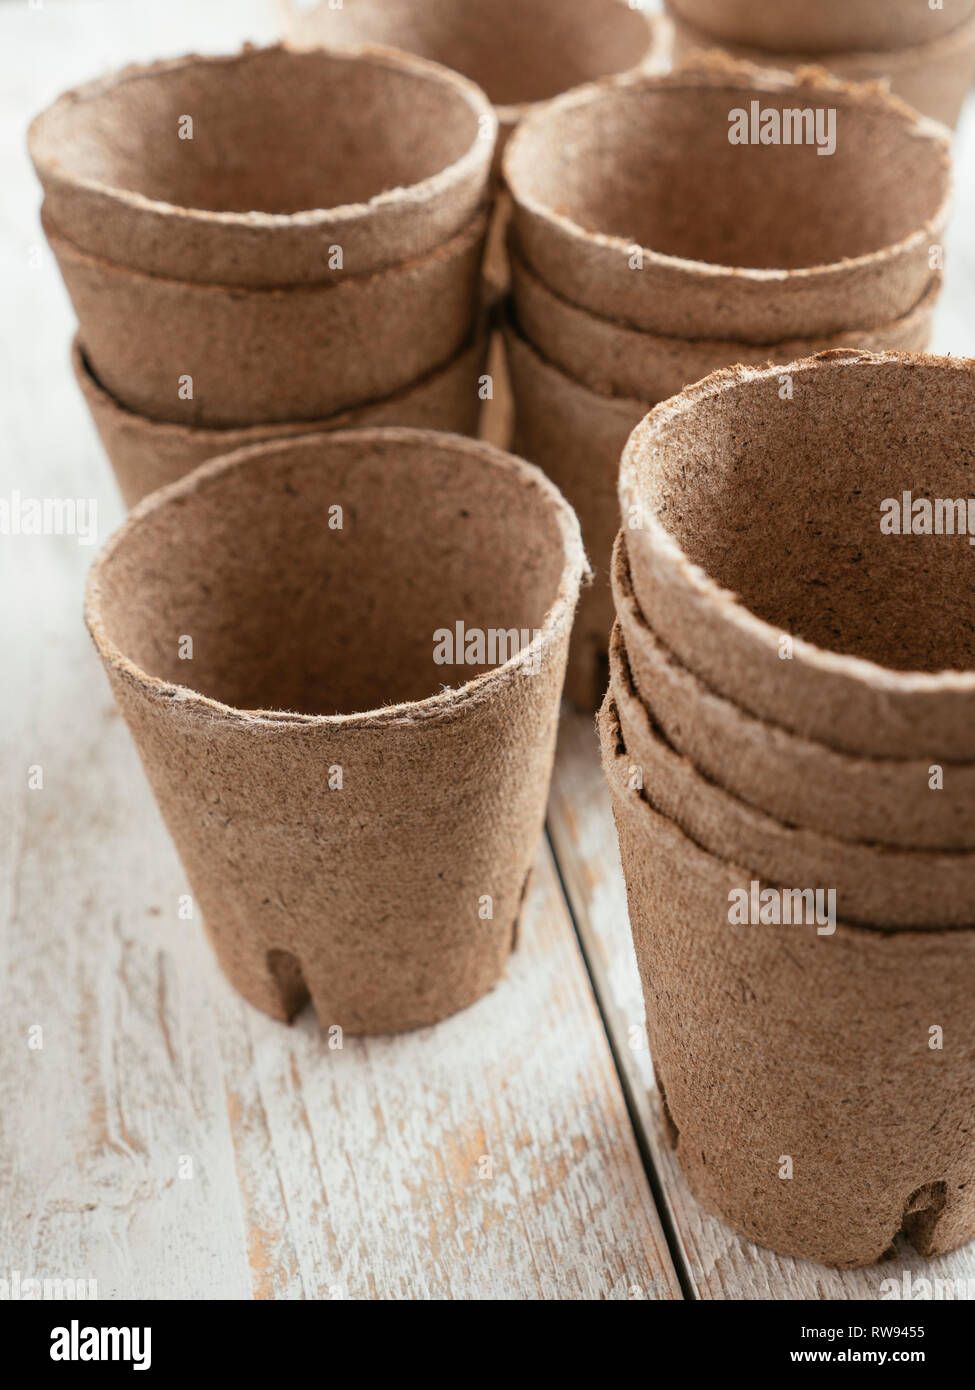 biodegradable peat planting pots, which help to reduce plastic use in gardening. Stock Photo